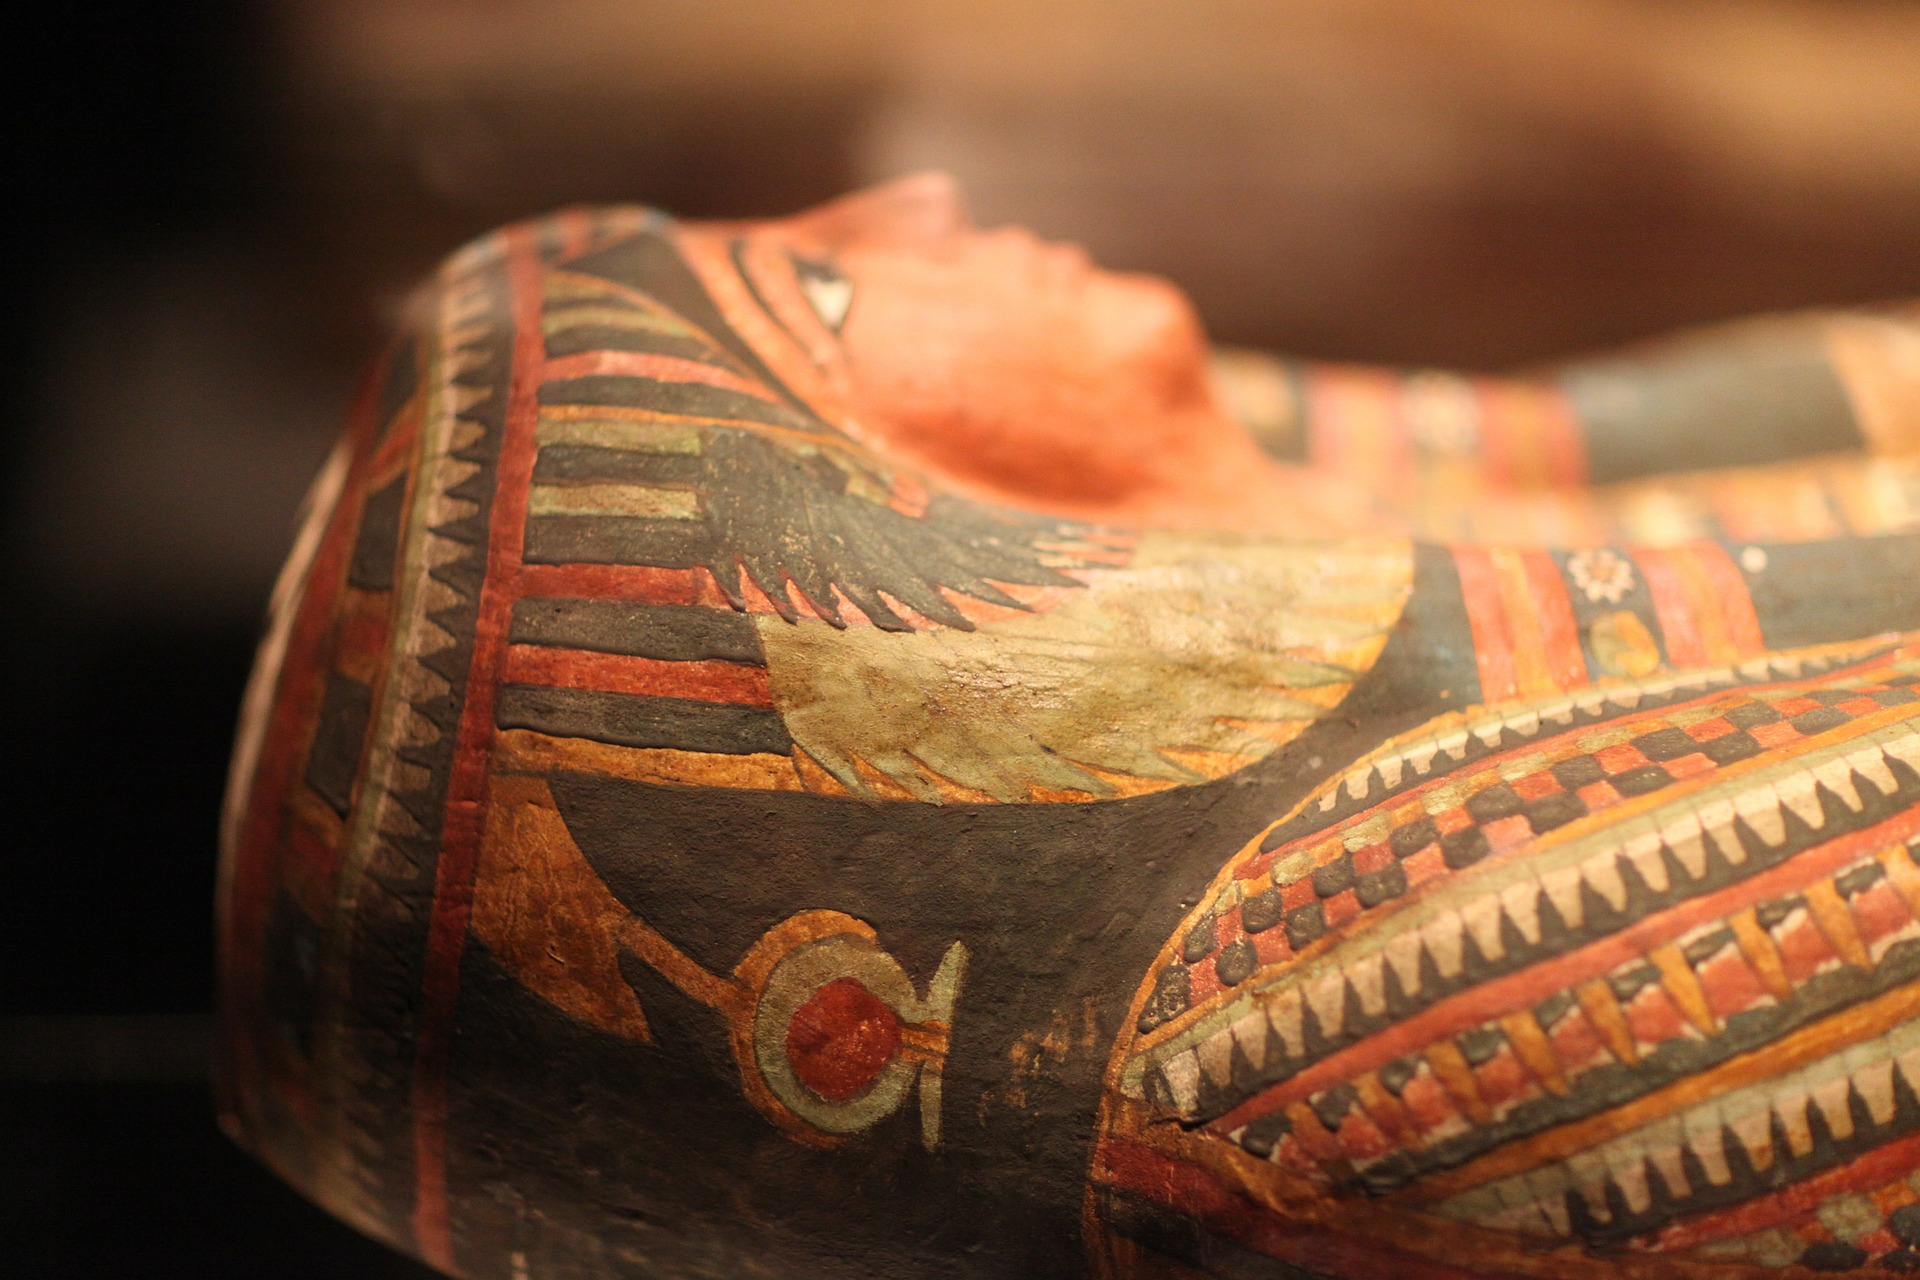 mummy egypt (Image by albertr from Pixabay)